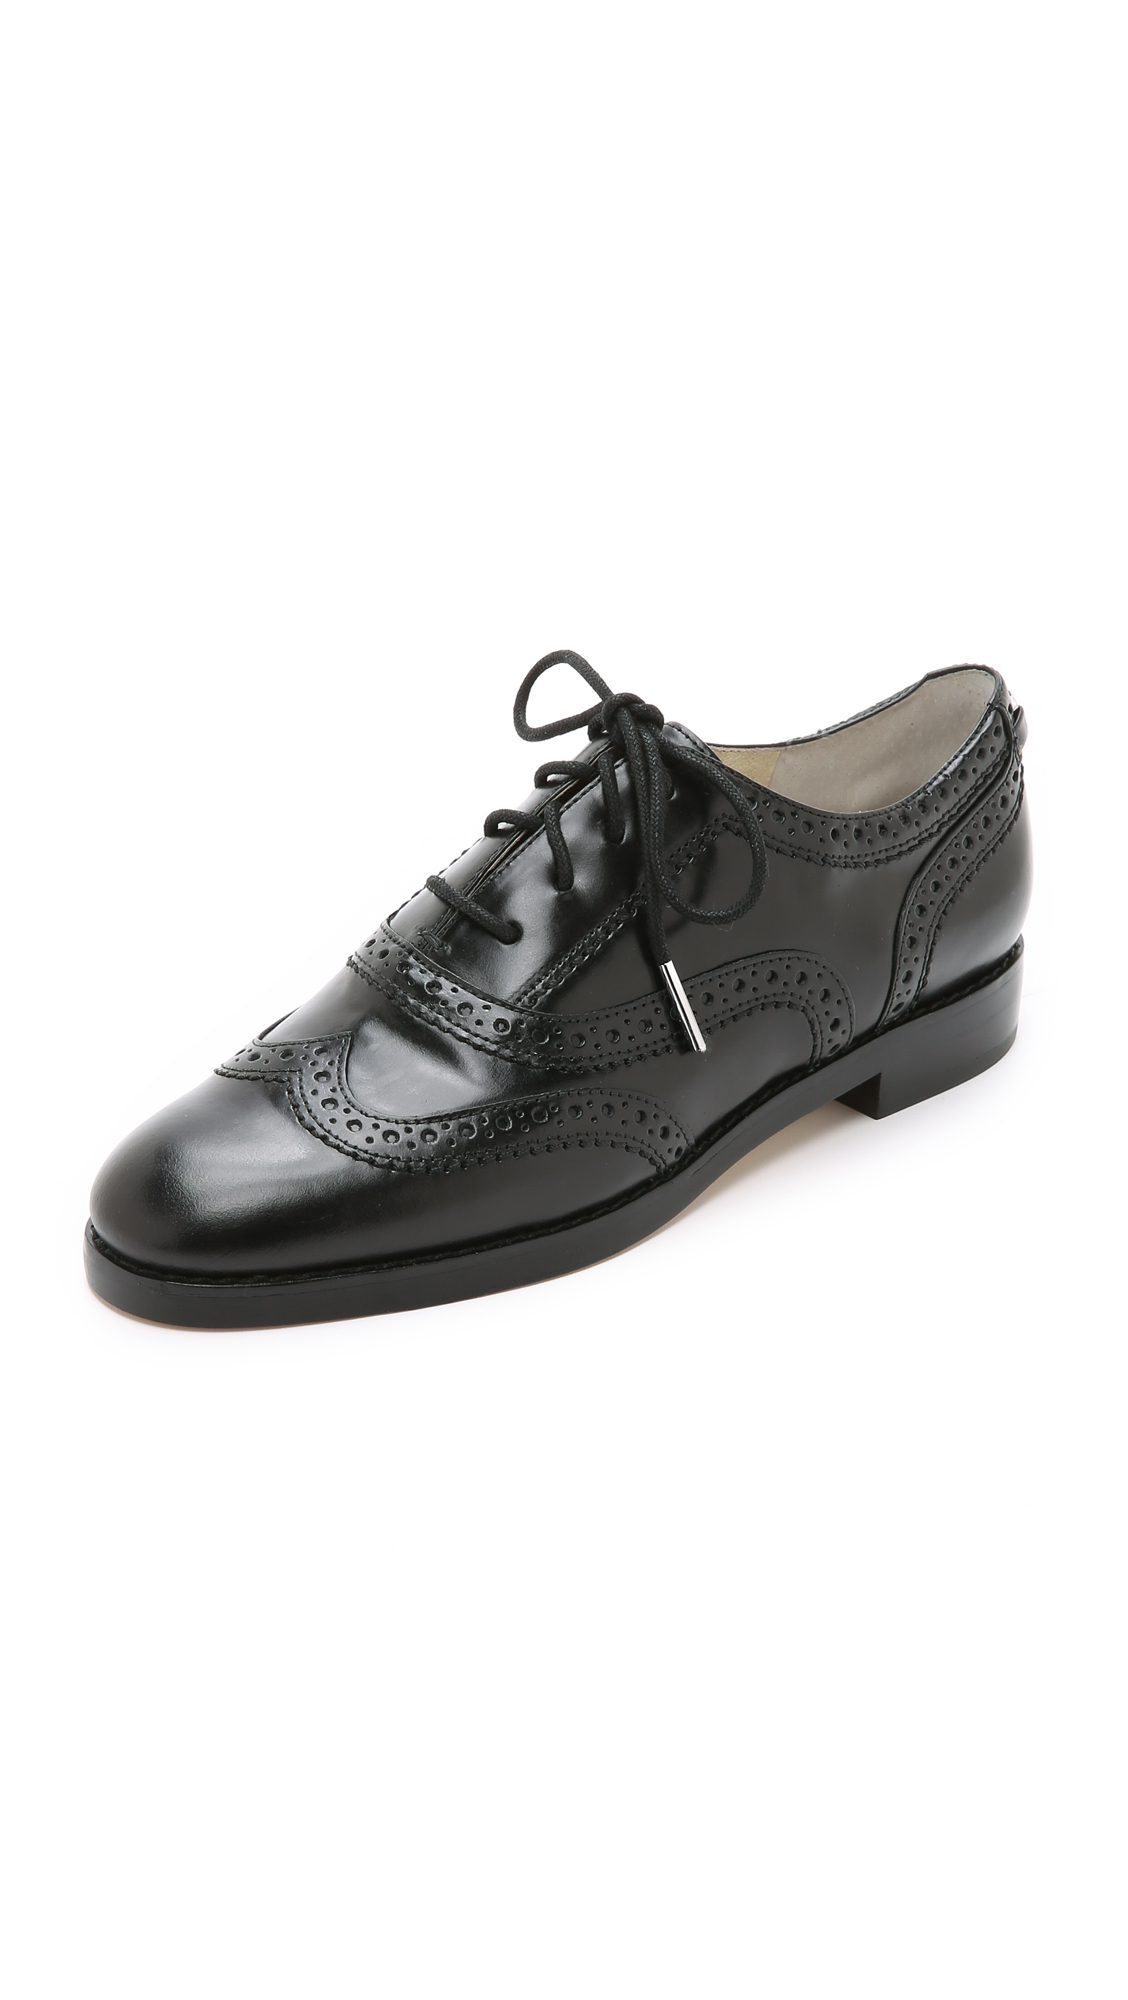 d7b40e4332 Lyst - Michael Michael Kors Regent Oxfords - Black in Black